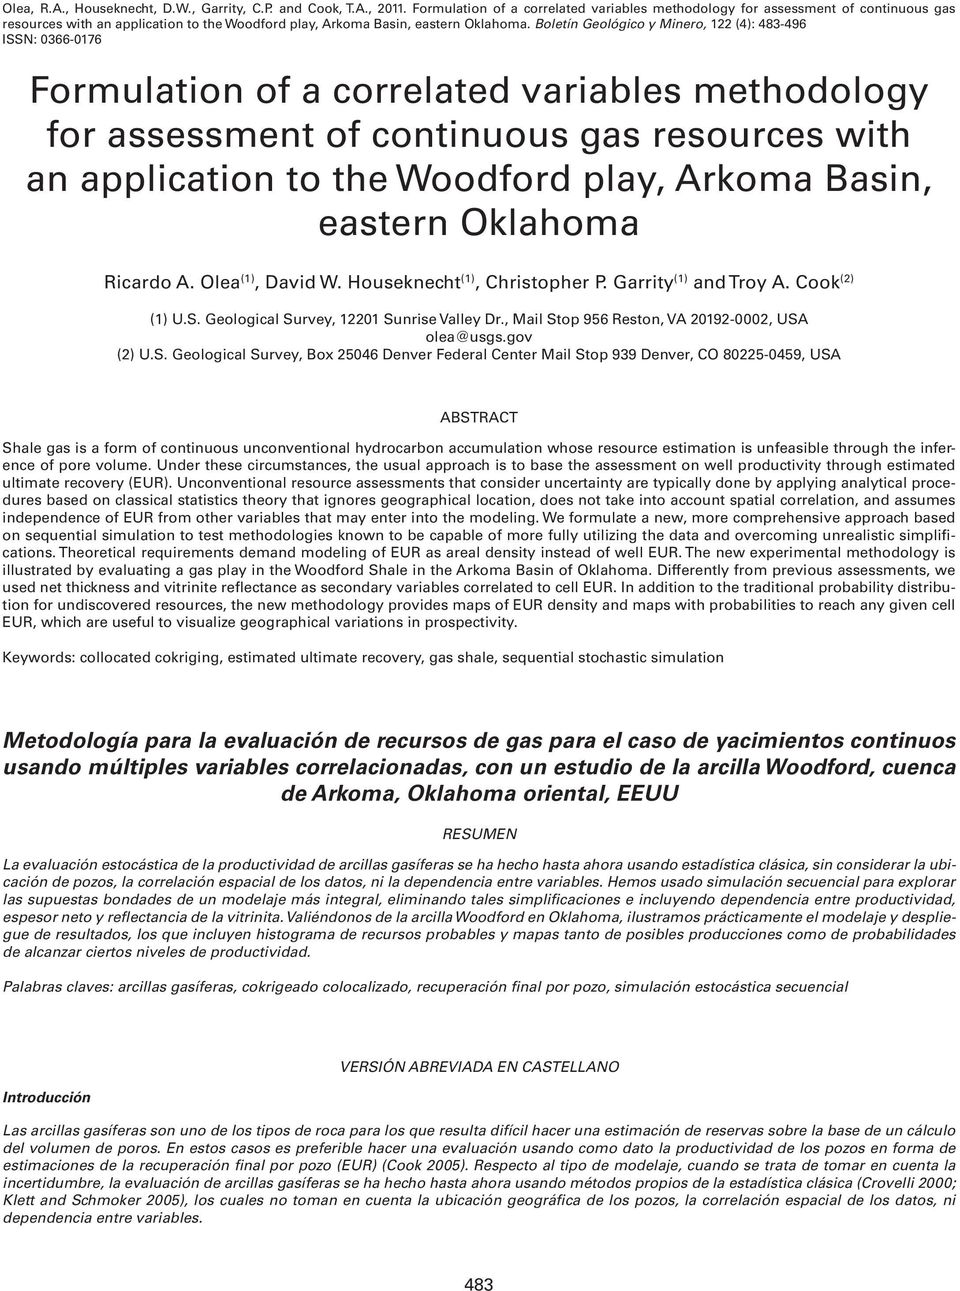 Boletín Geológico y Minero, 122 (4): 483-496 ISSN: 0366-0176 Formultion of correlted vriles methodology for ssessment of continuous gs resources with n ppliction to the Woodford ply, Arkom Bsin,